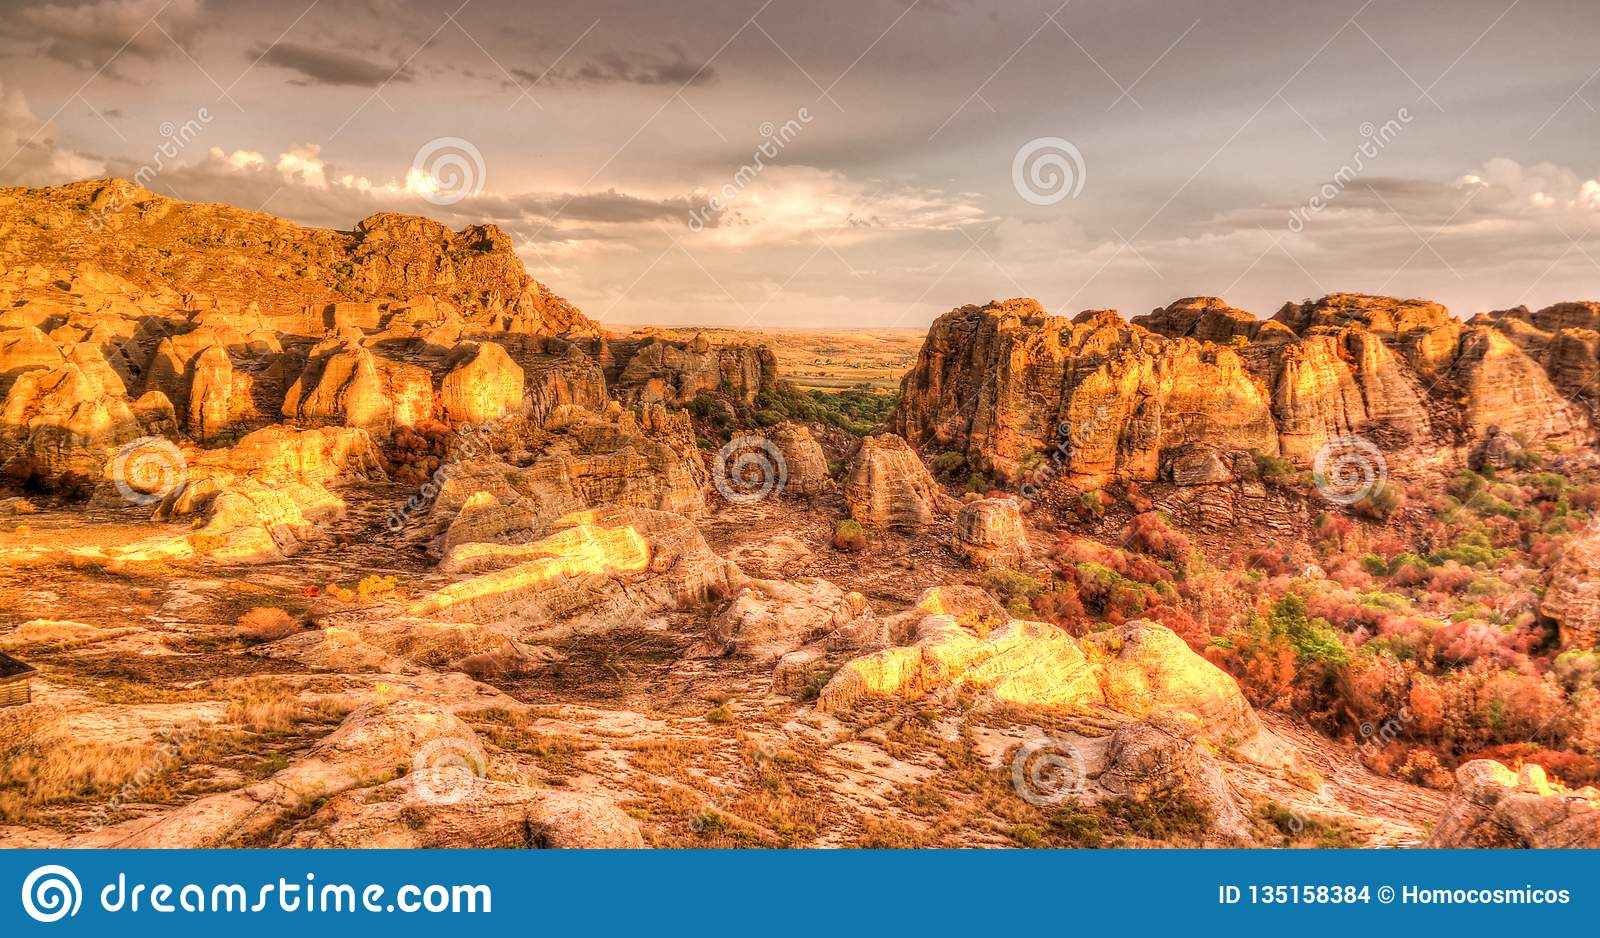 Abstract Rock formation in Isalo national park at sunset, Madagascar